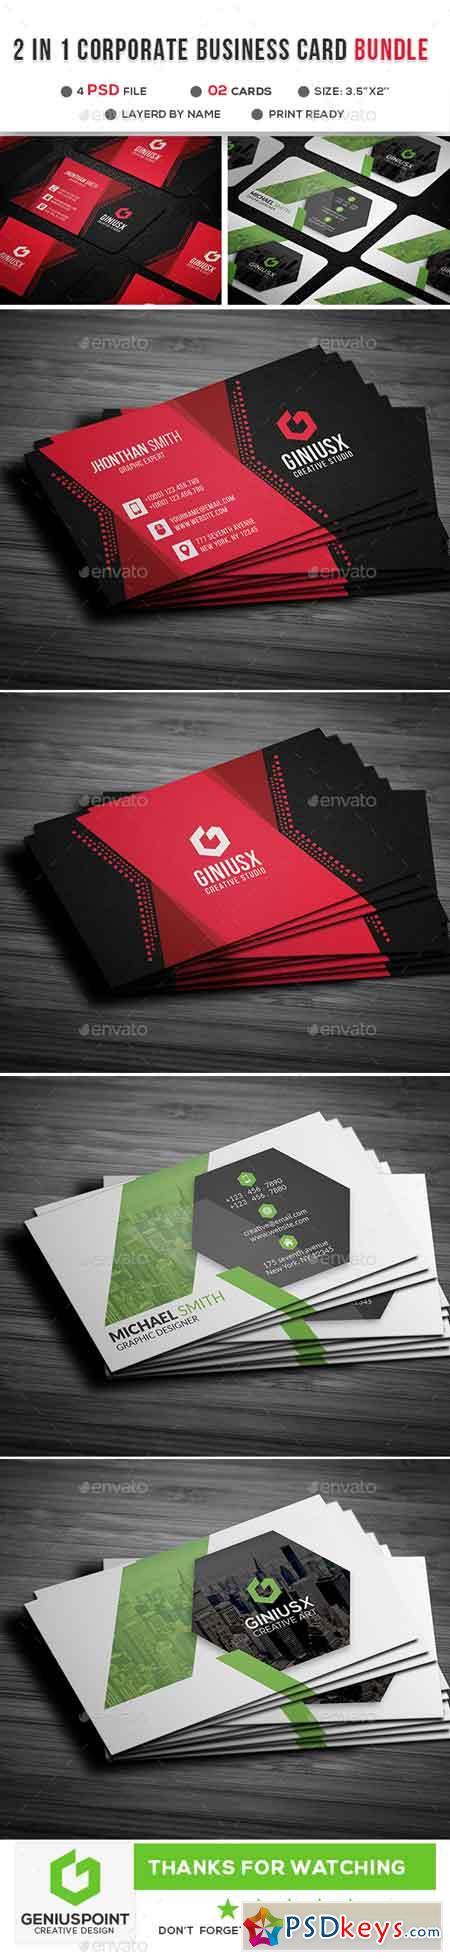 2 in 1 Corporate Business Card 21903590